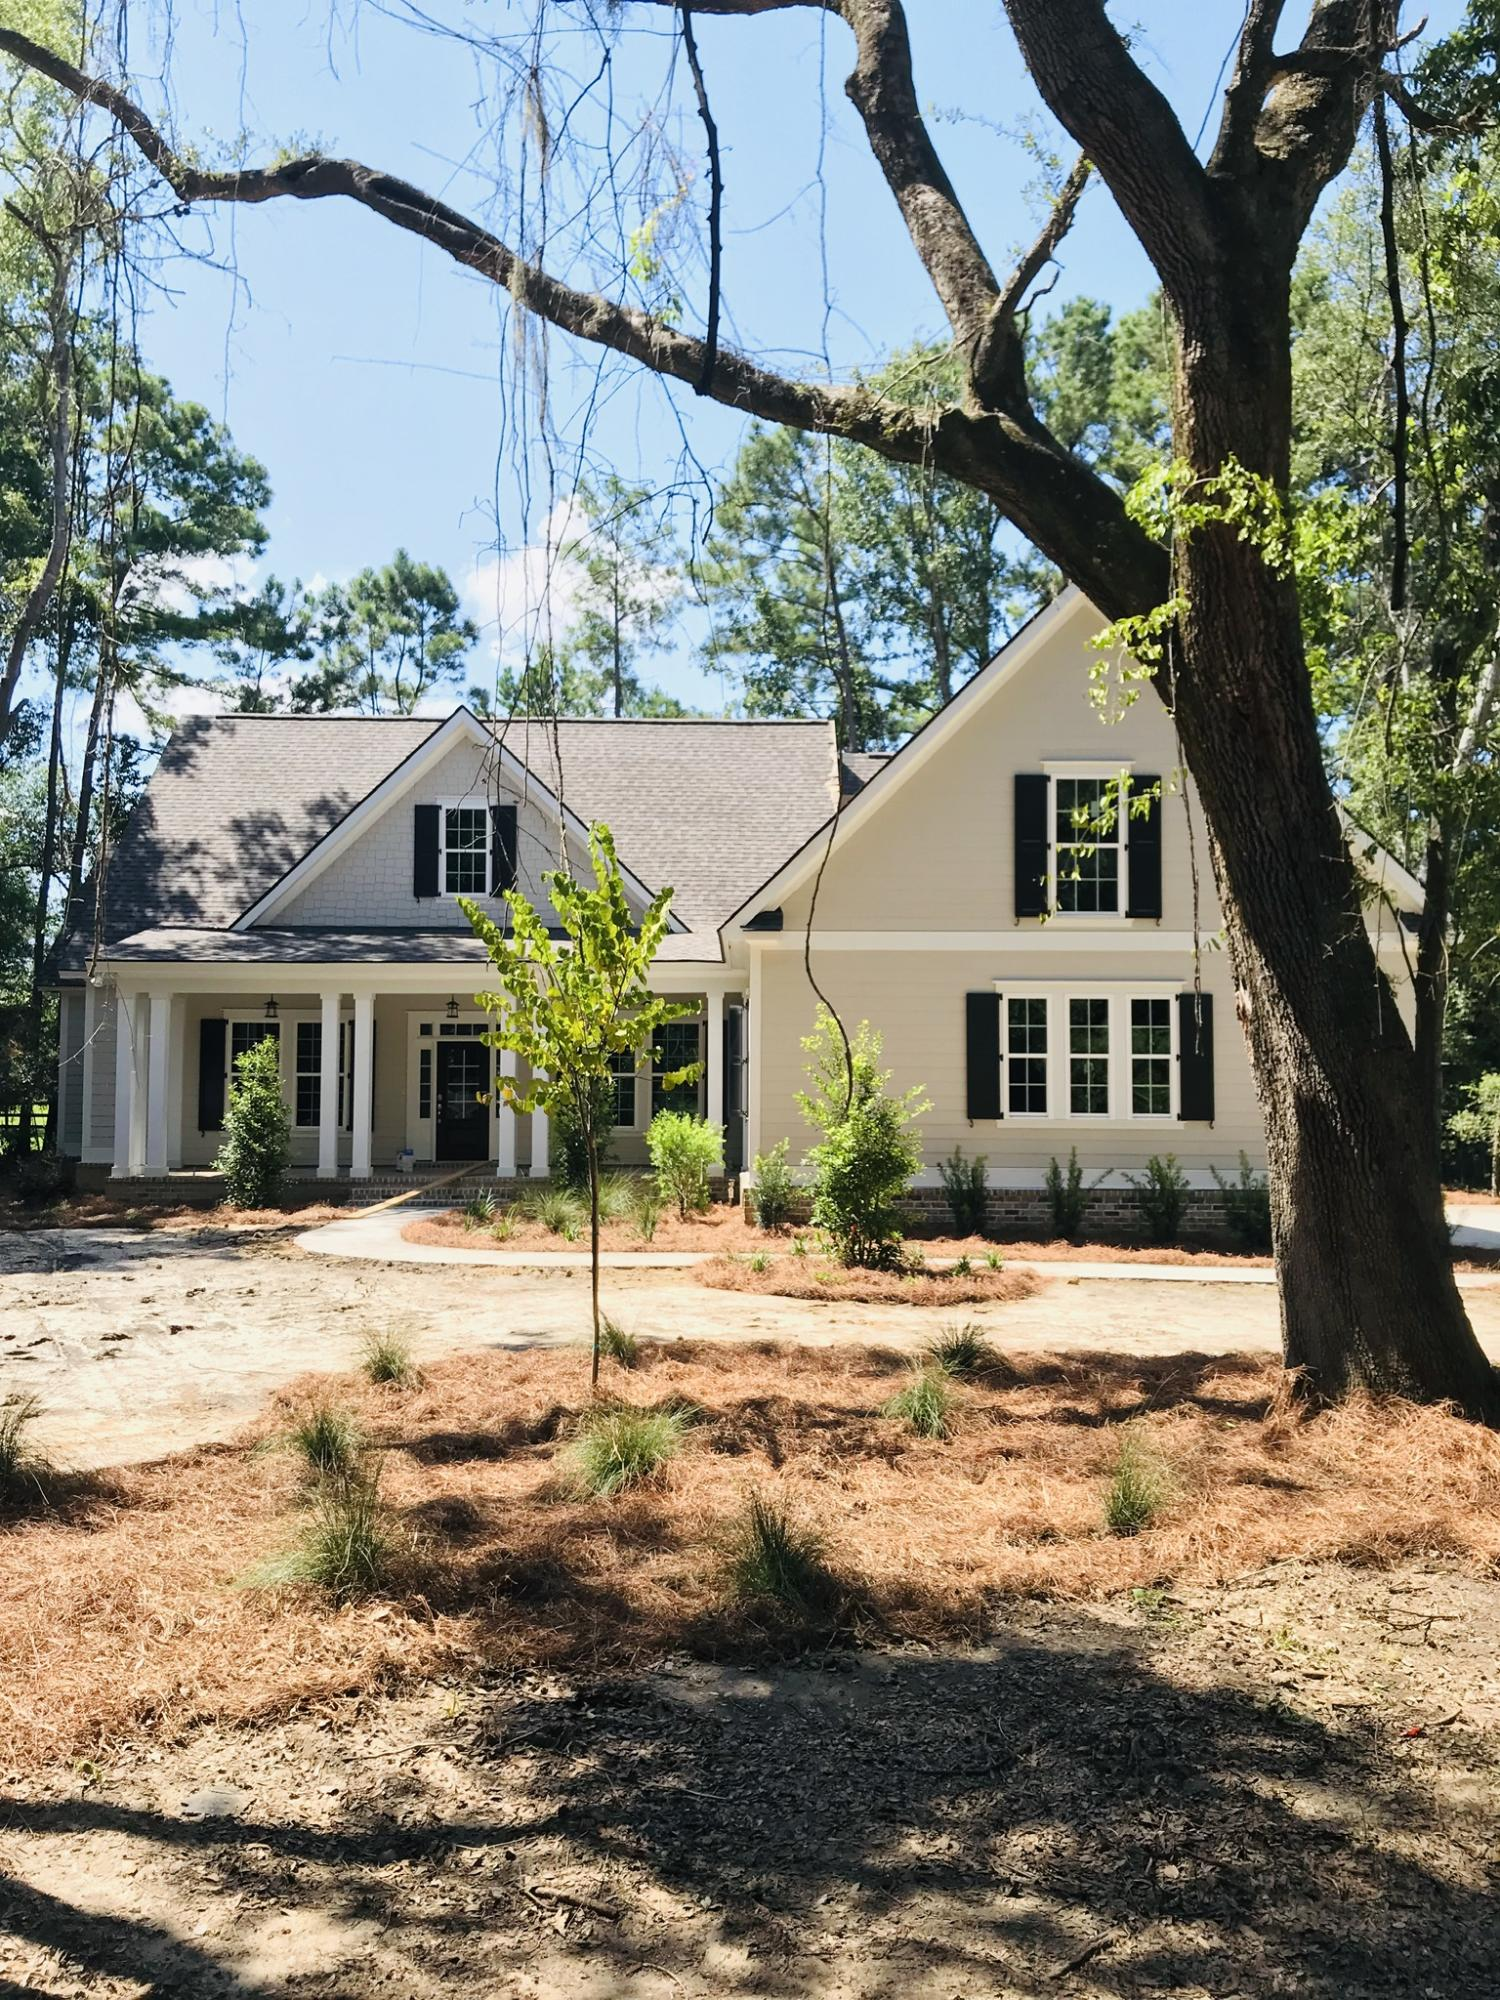 Stono Ferry Homes For Sale - 5235 Old Washington Course, Hollywood, SC - 11